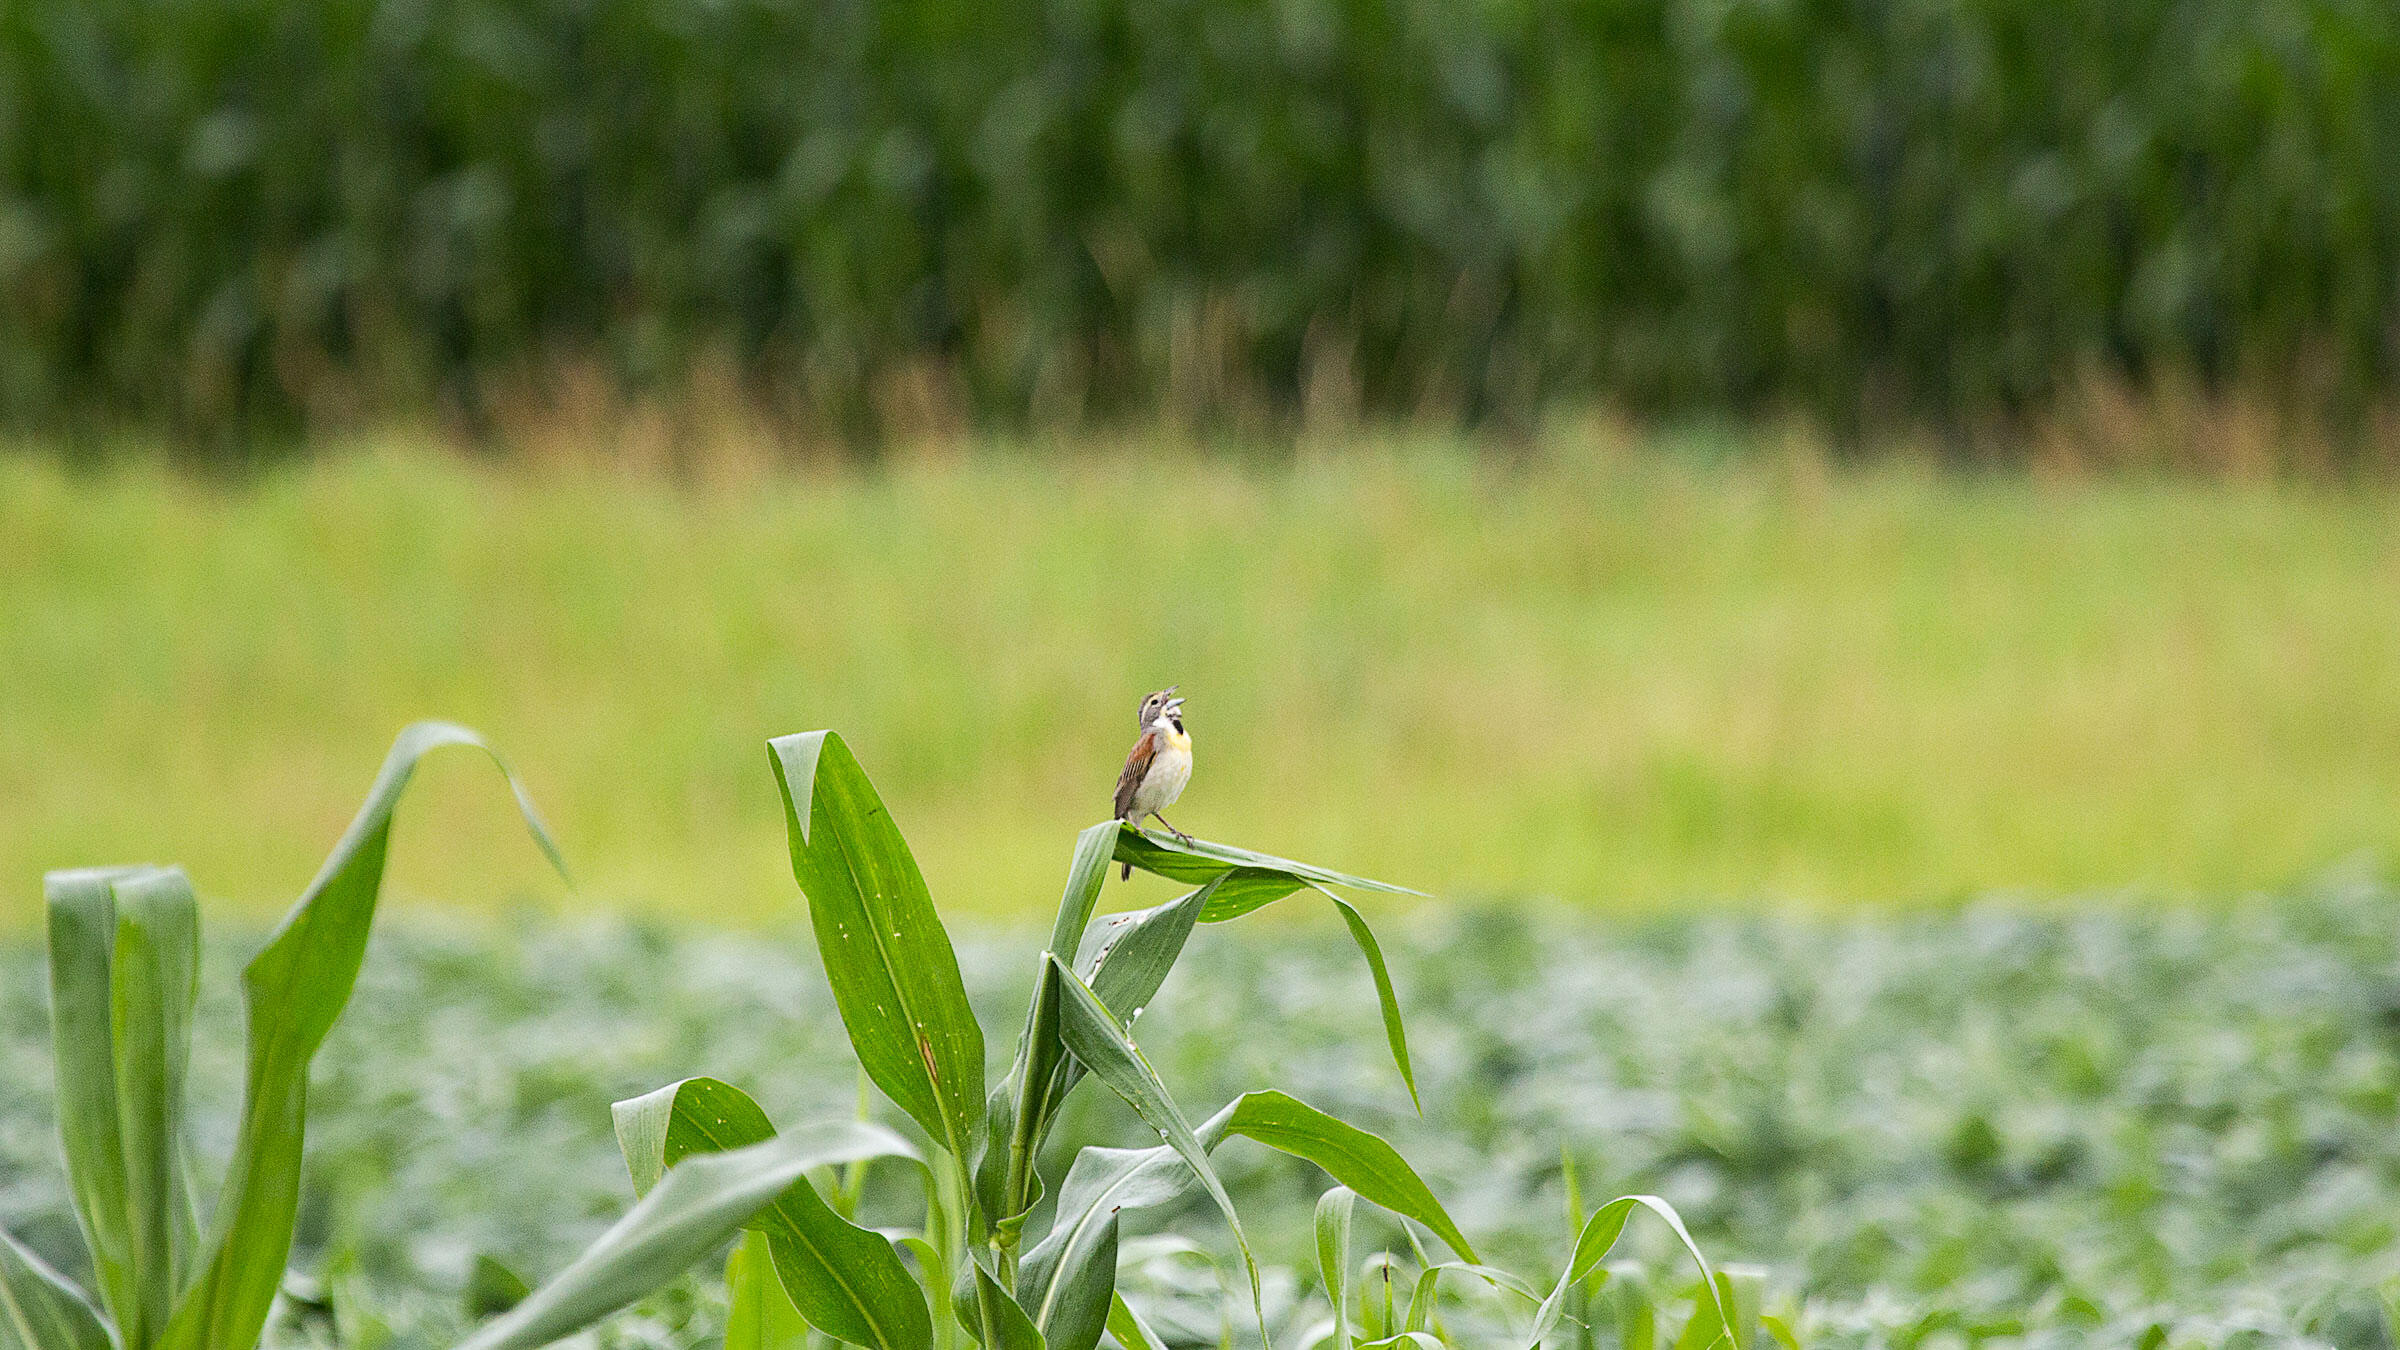 Study plots at the Neal Smith National Wildlife Refuge have shown that strips of native prairie embedded within monoculture farm fields can support Dickcissels and other grassland birds. Matt Stephenson